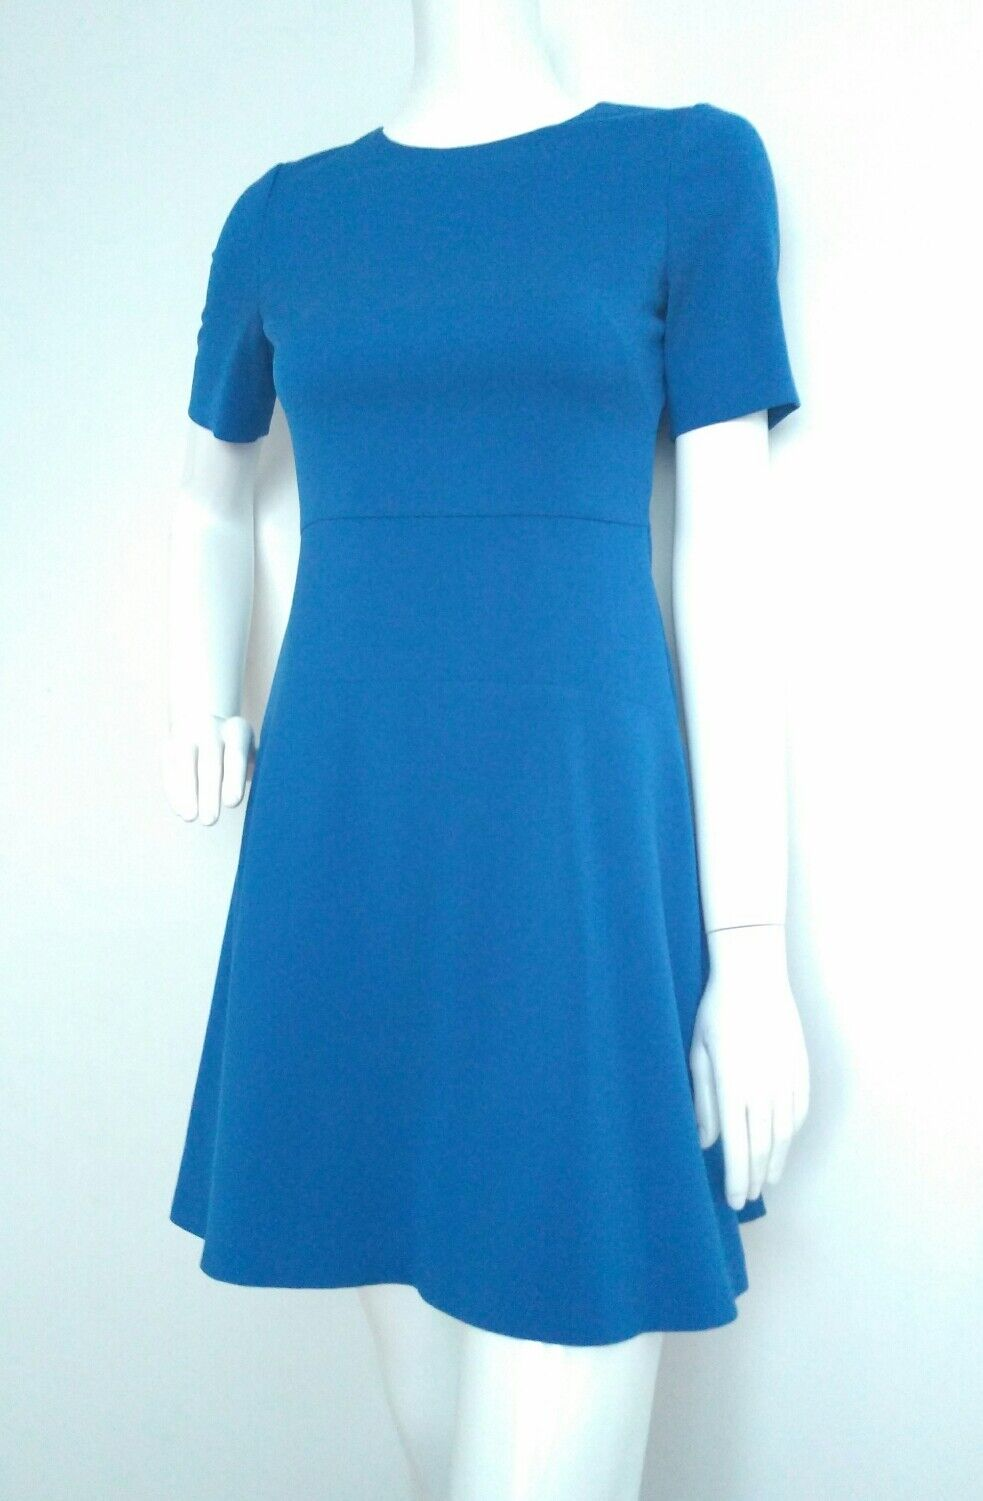 HOBBS ponte dress size 8 --USED ONCE-- short sleeve fit and flare